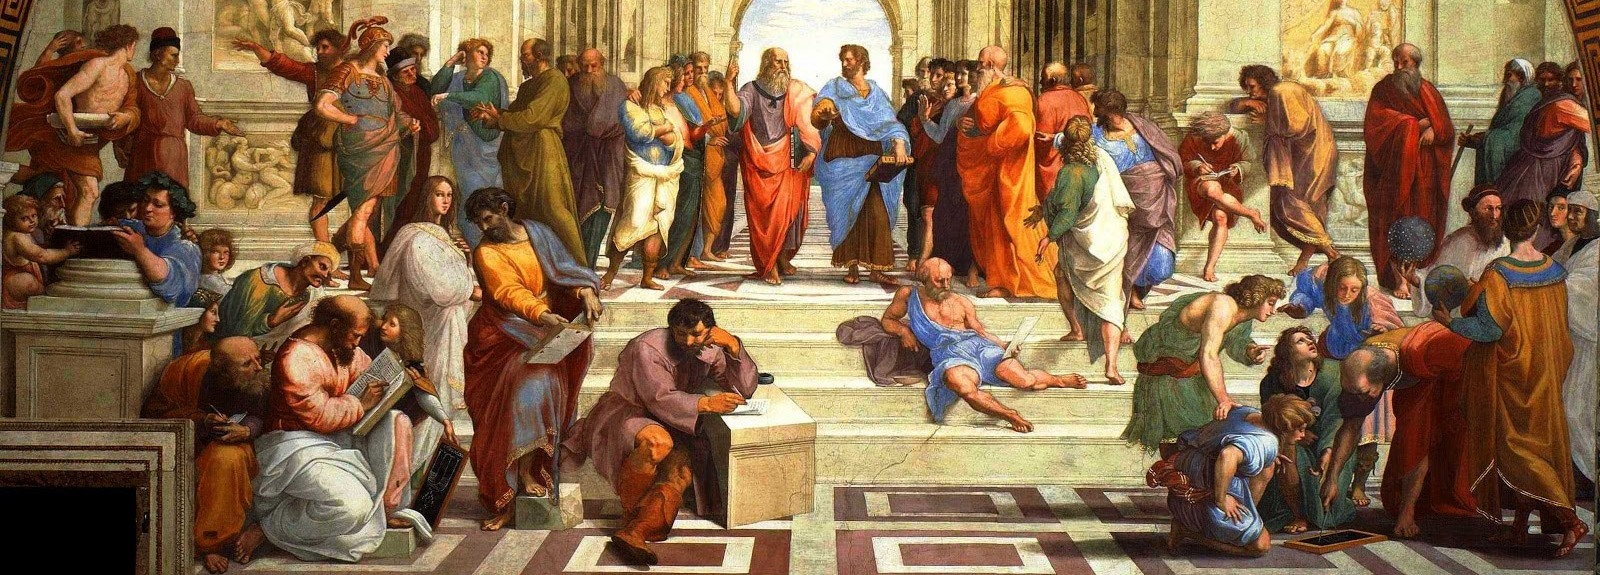 the value of philosophy the olympics and medicine in the society of ancient greece